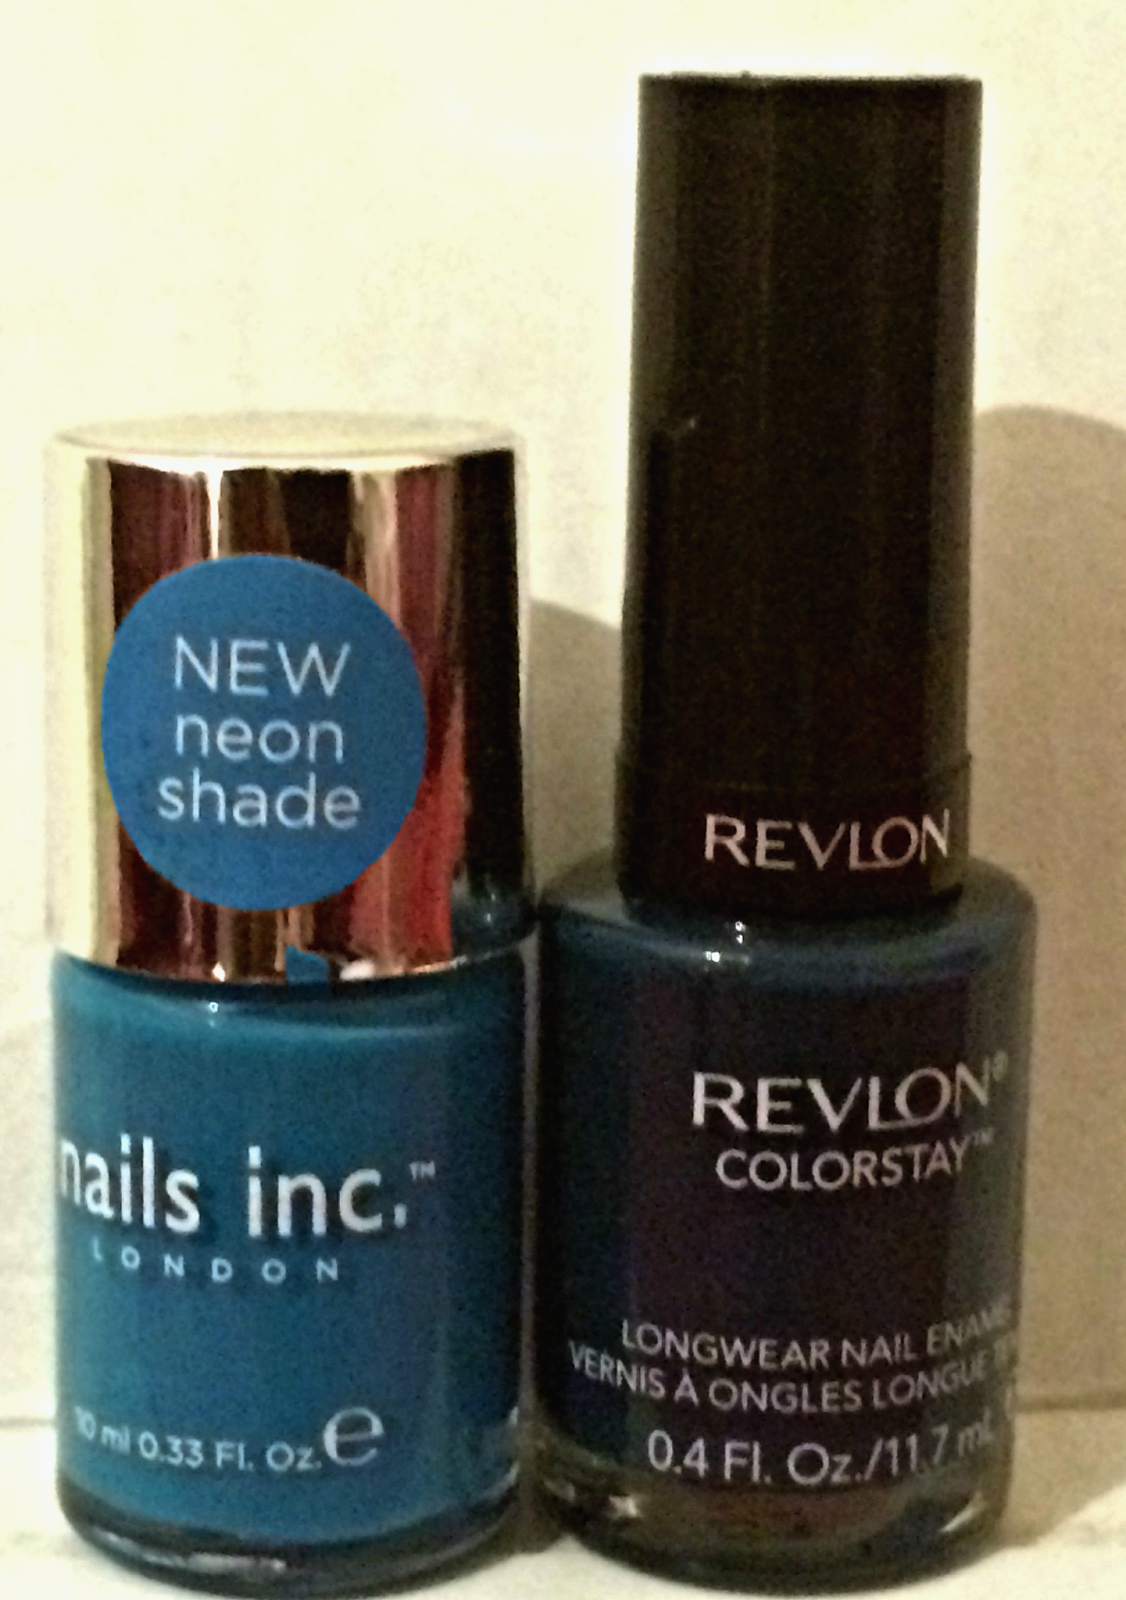 Nails Inc Revlon nail polishes